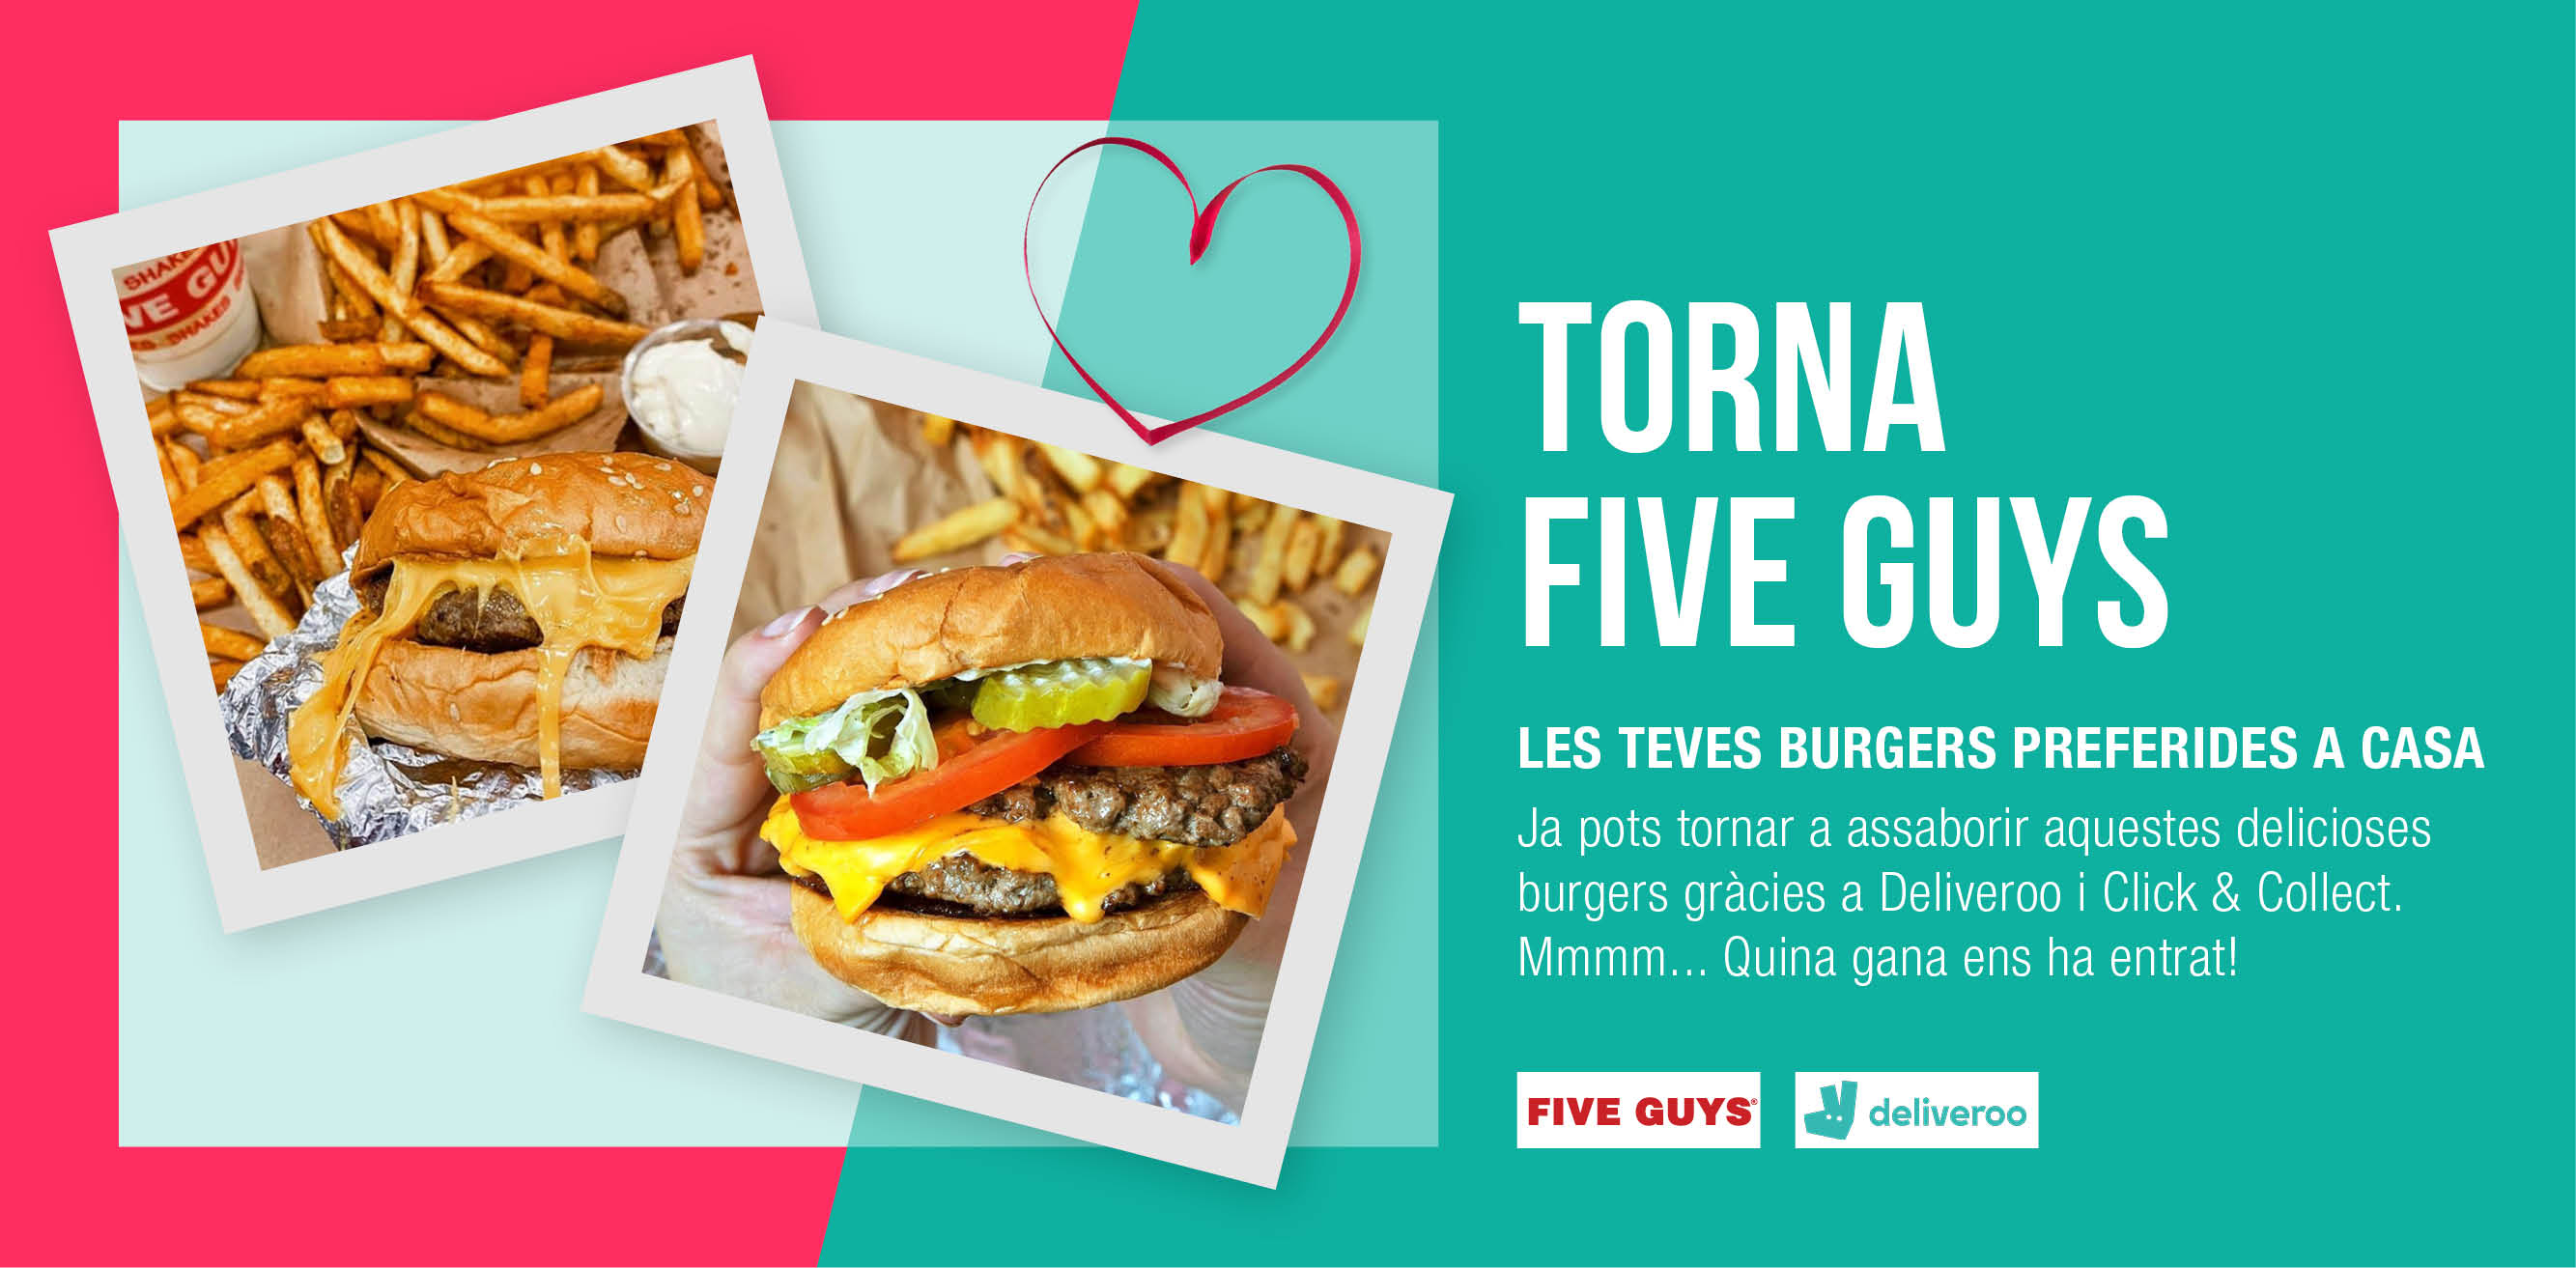 SERVEI DELIVERY AMB FIVE GUYS